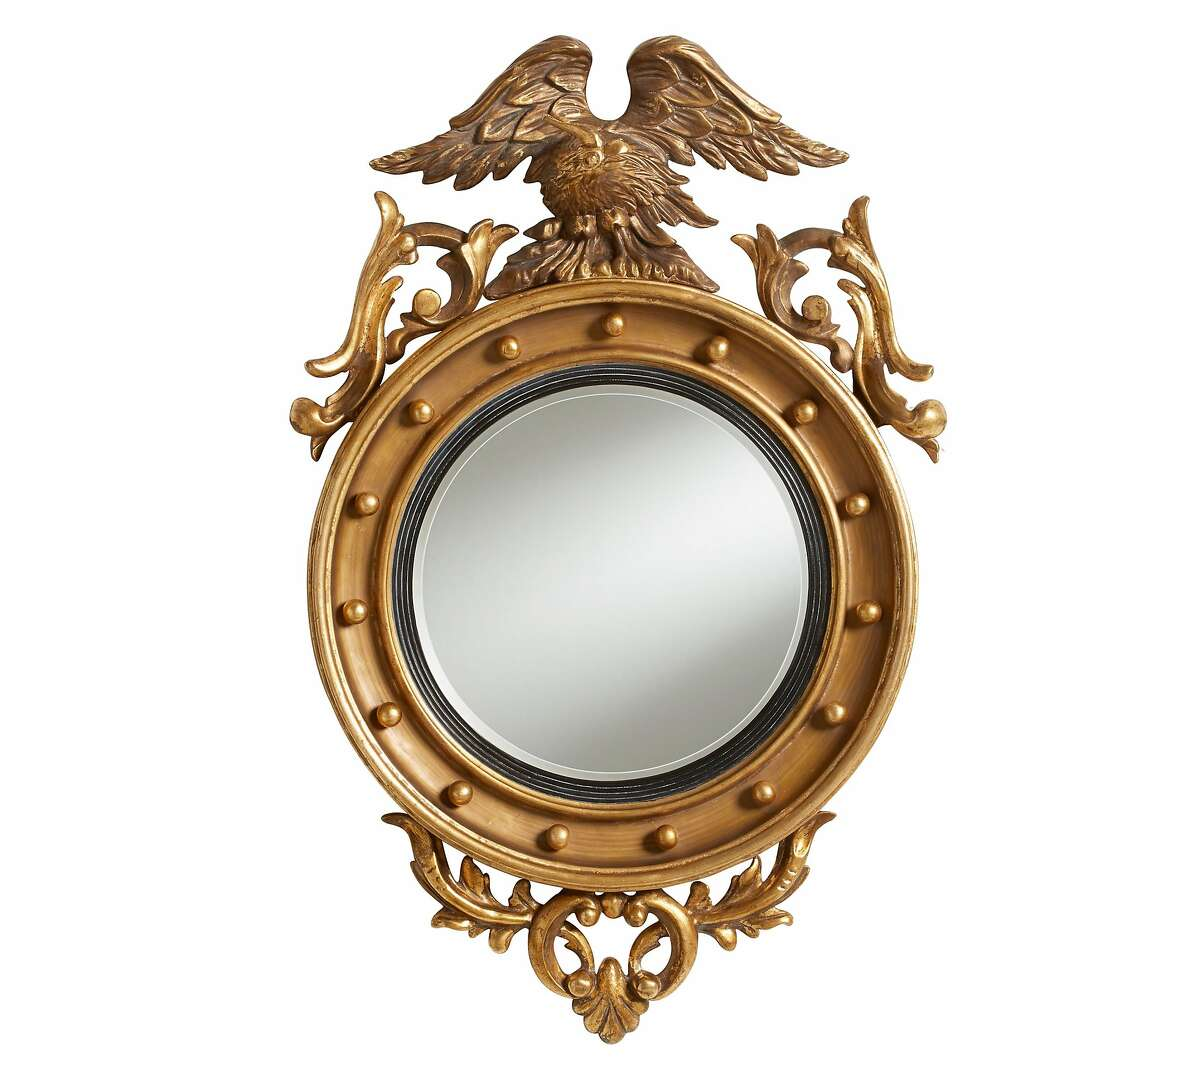 San Francisco interior designer Ken Fulk, who rose to national fame through his work with billionaire social media clients and other local monied clients, has created a line of home furnishings and accessories for Pottery Barn. It launches in August, 2015. Inspired by a traditional Early American design, this federal-style mirror is crowned by a bald eagle with outstretched wings and features a porthole-like center. The mirror is 20 1/4 inch in diameter and weighs 10 pounds. It retails for $499.